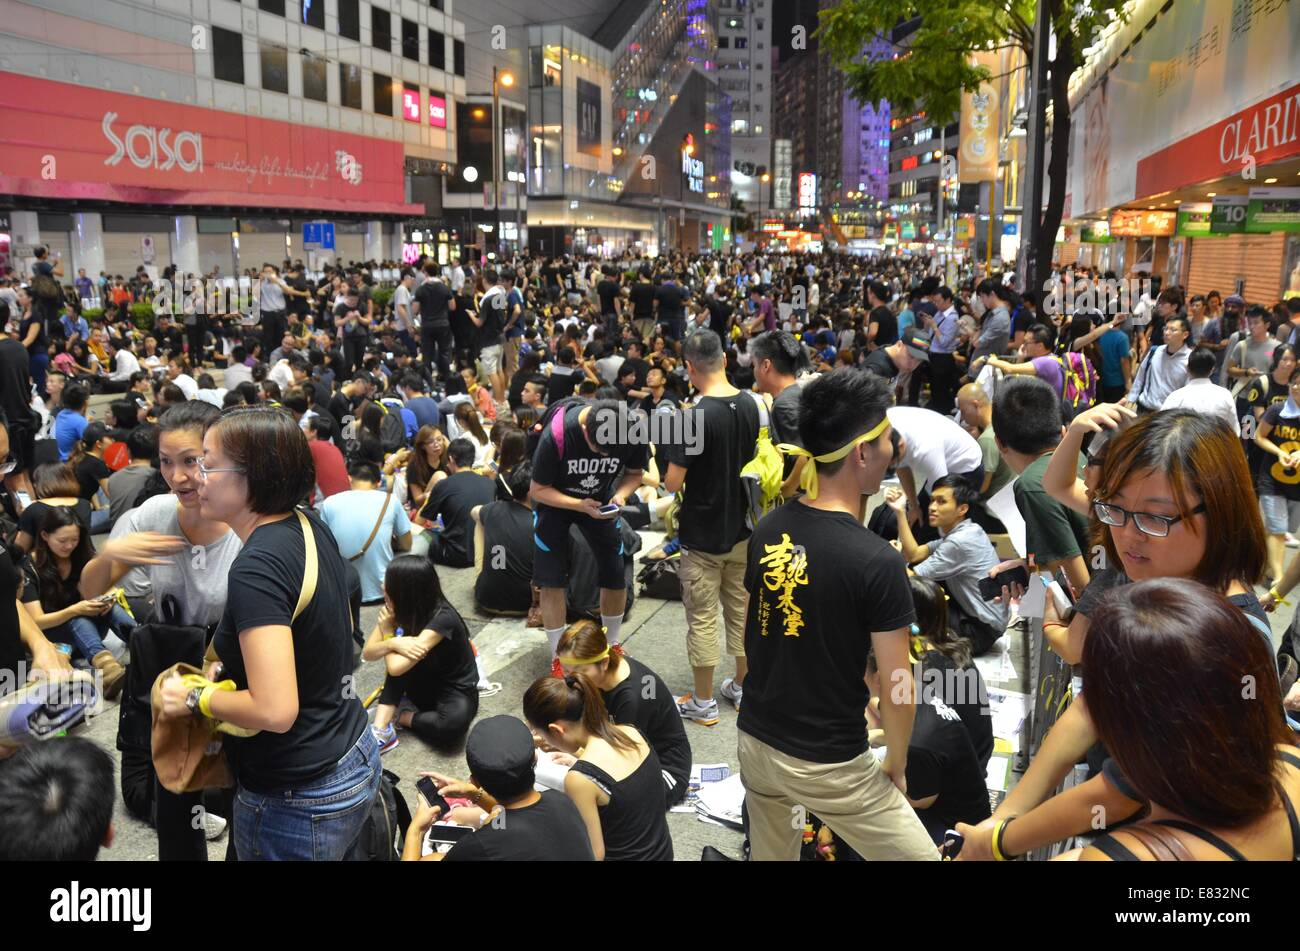 Hong Kong. 29th Sep, 2014. Hong Kong Protests: Thousands of young people wearing black T-shirts take part in the Stock Photo